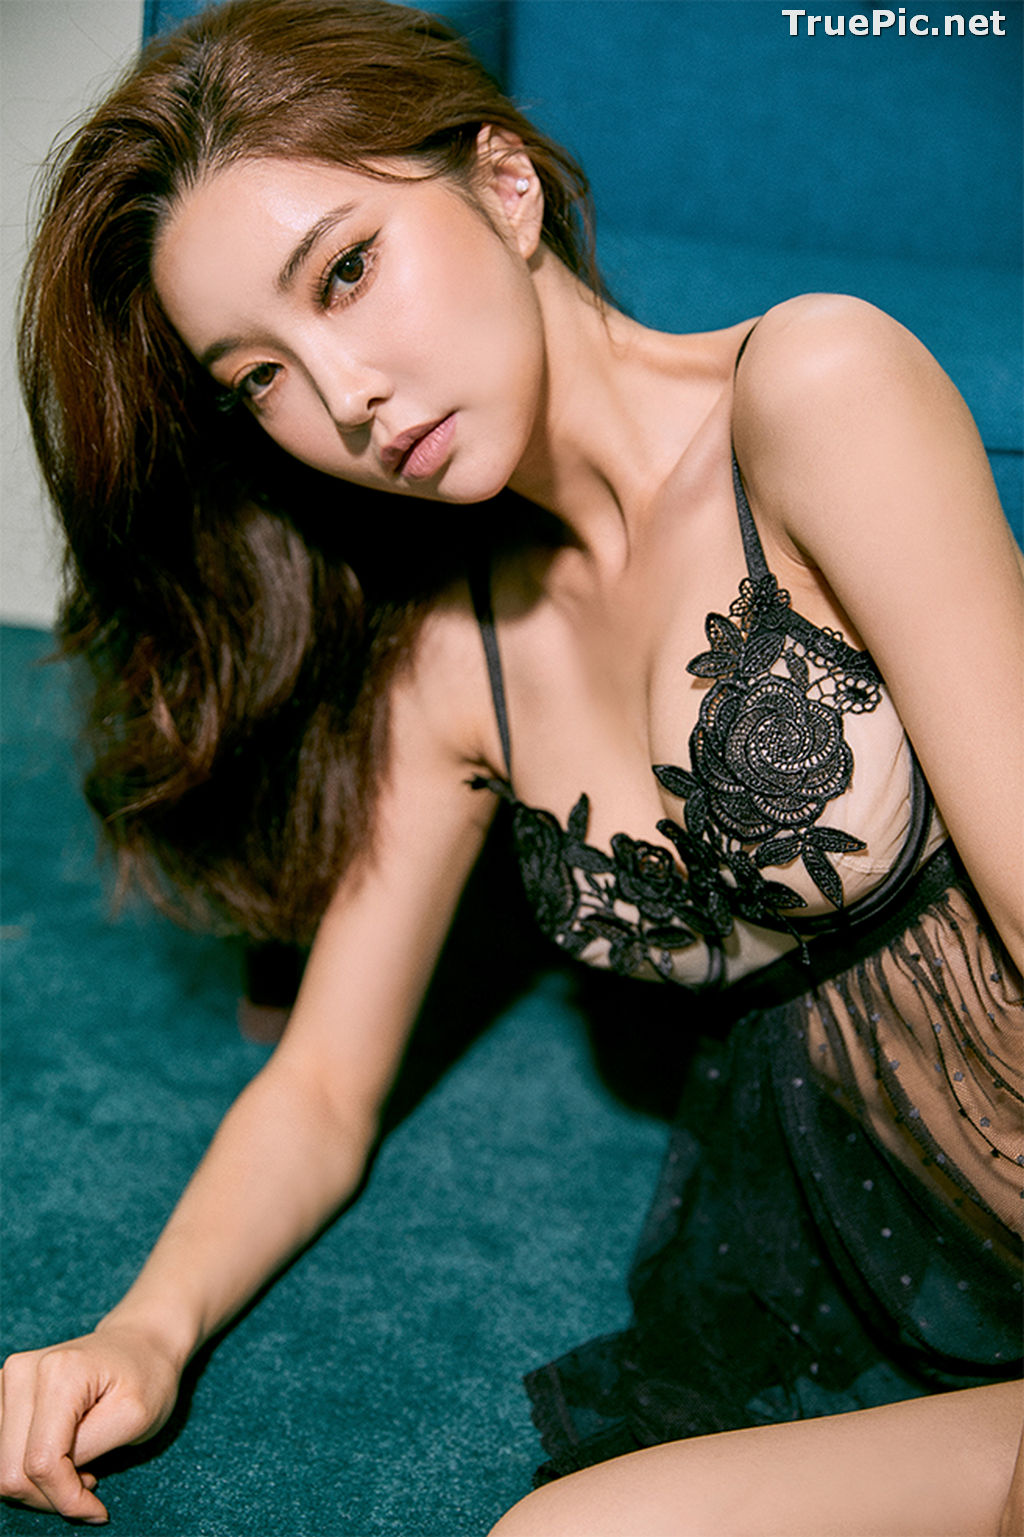 Image Korean Fashion Model – Park Soo Yeon (박수연) – Come On Vincent Lingerie #1 - TruePic.net - Picture-6